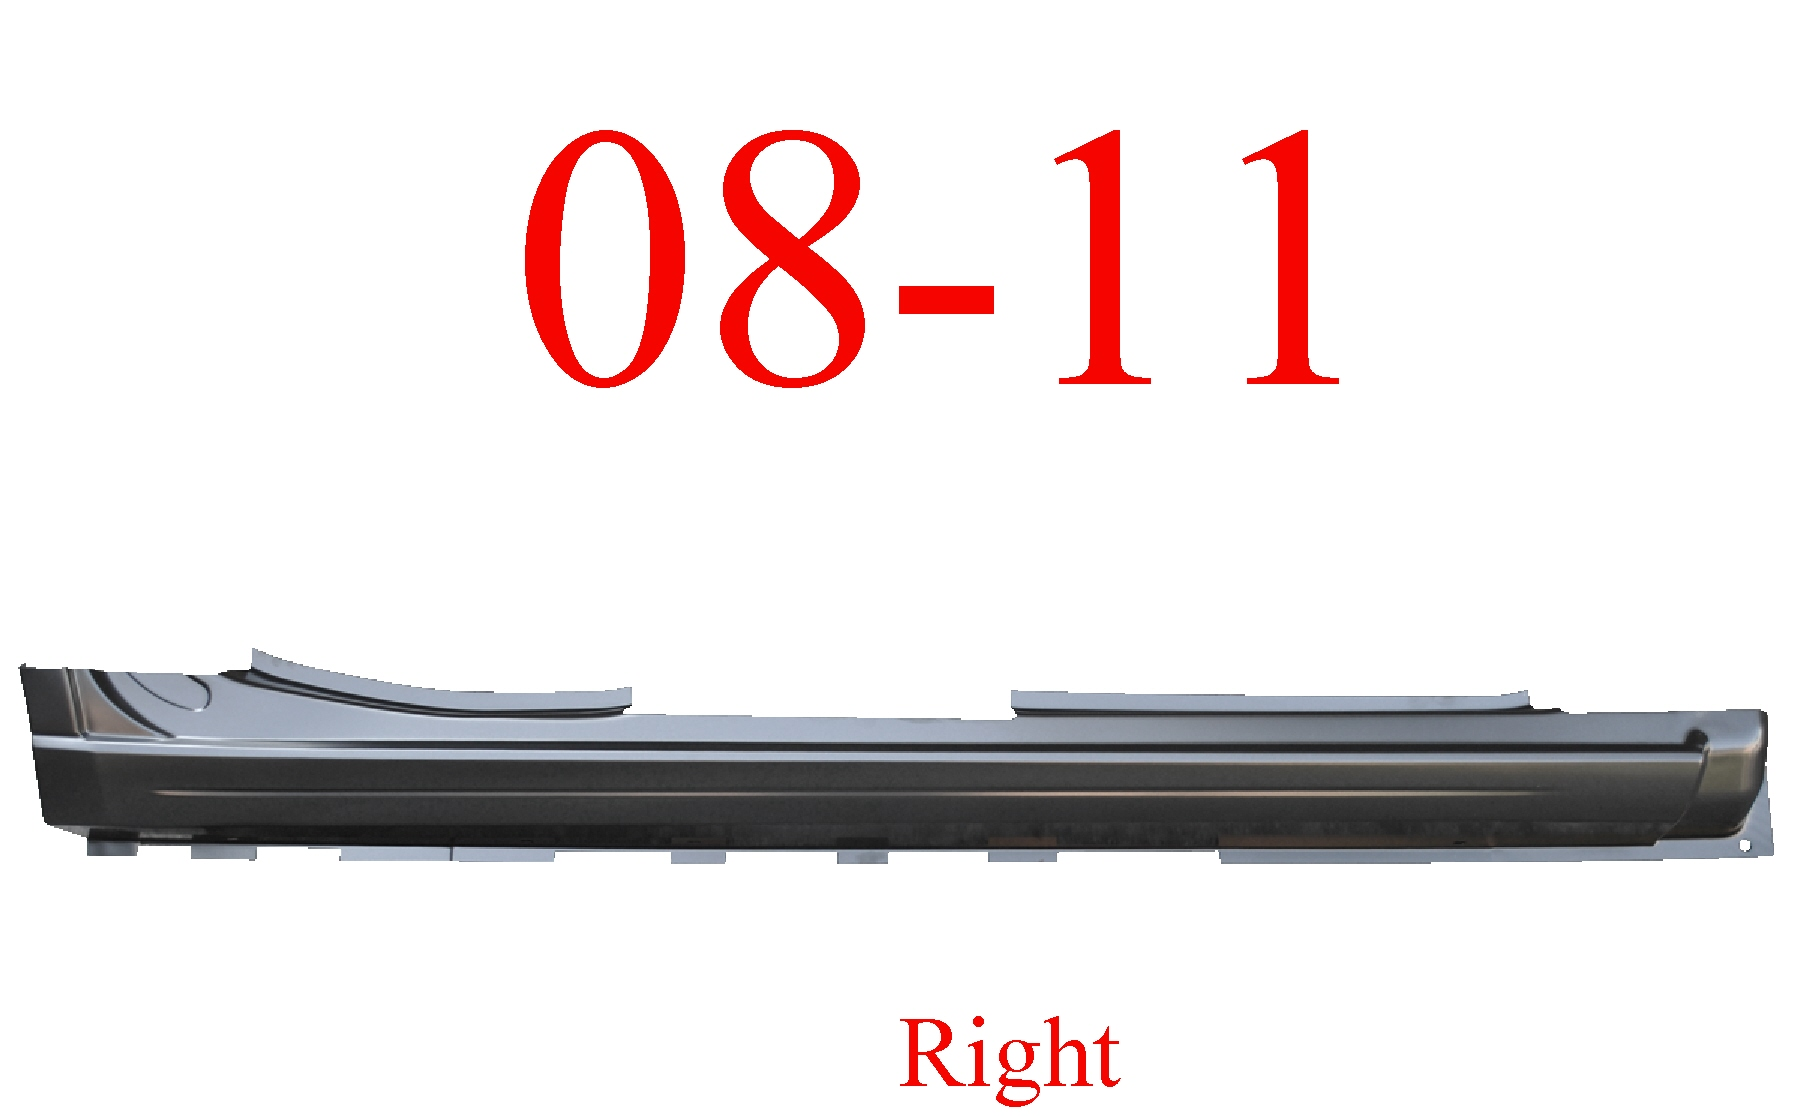 08-11 Ford Focus Right Extended Rocker Panel 4 Door